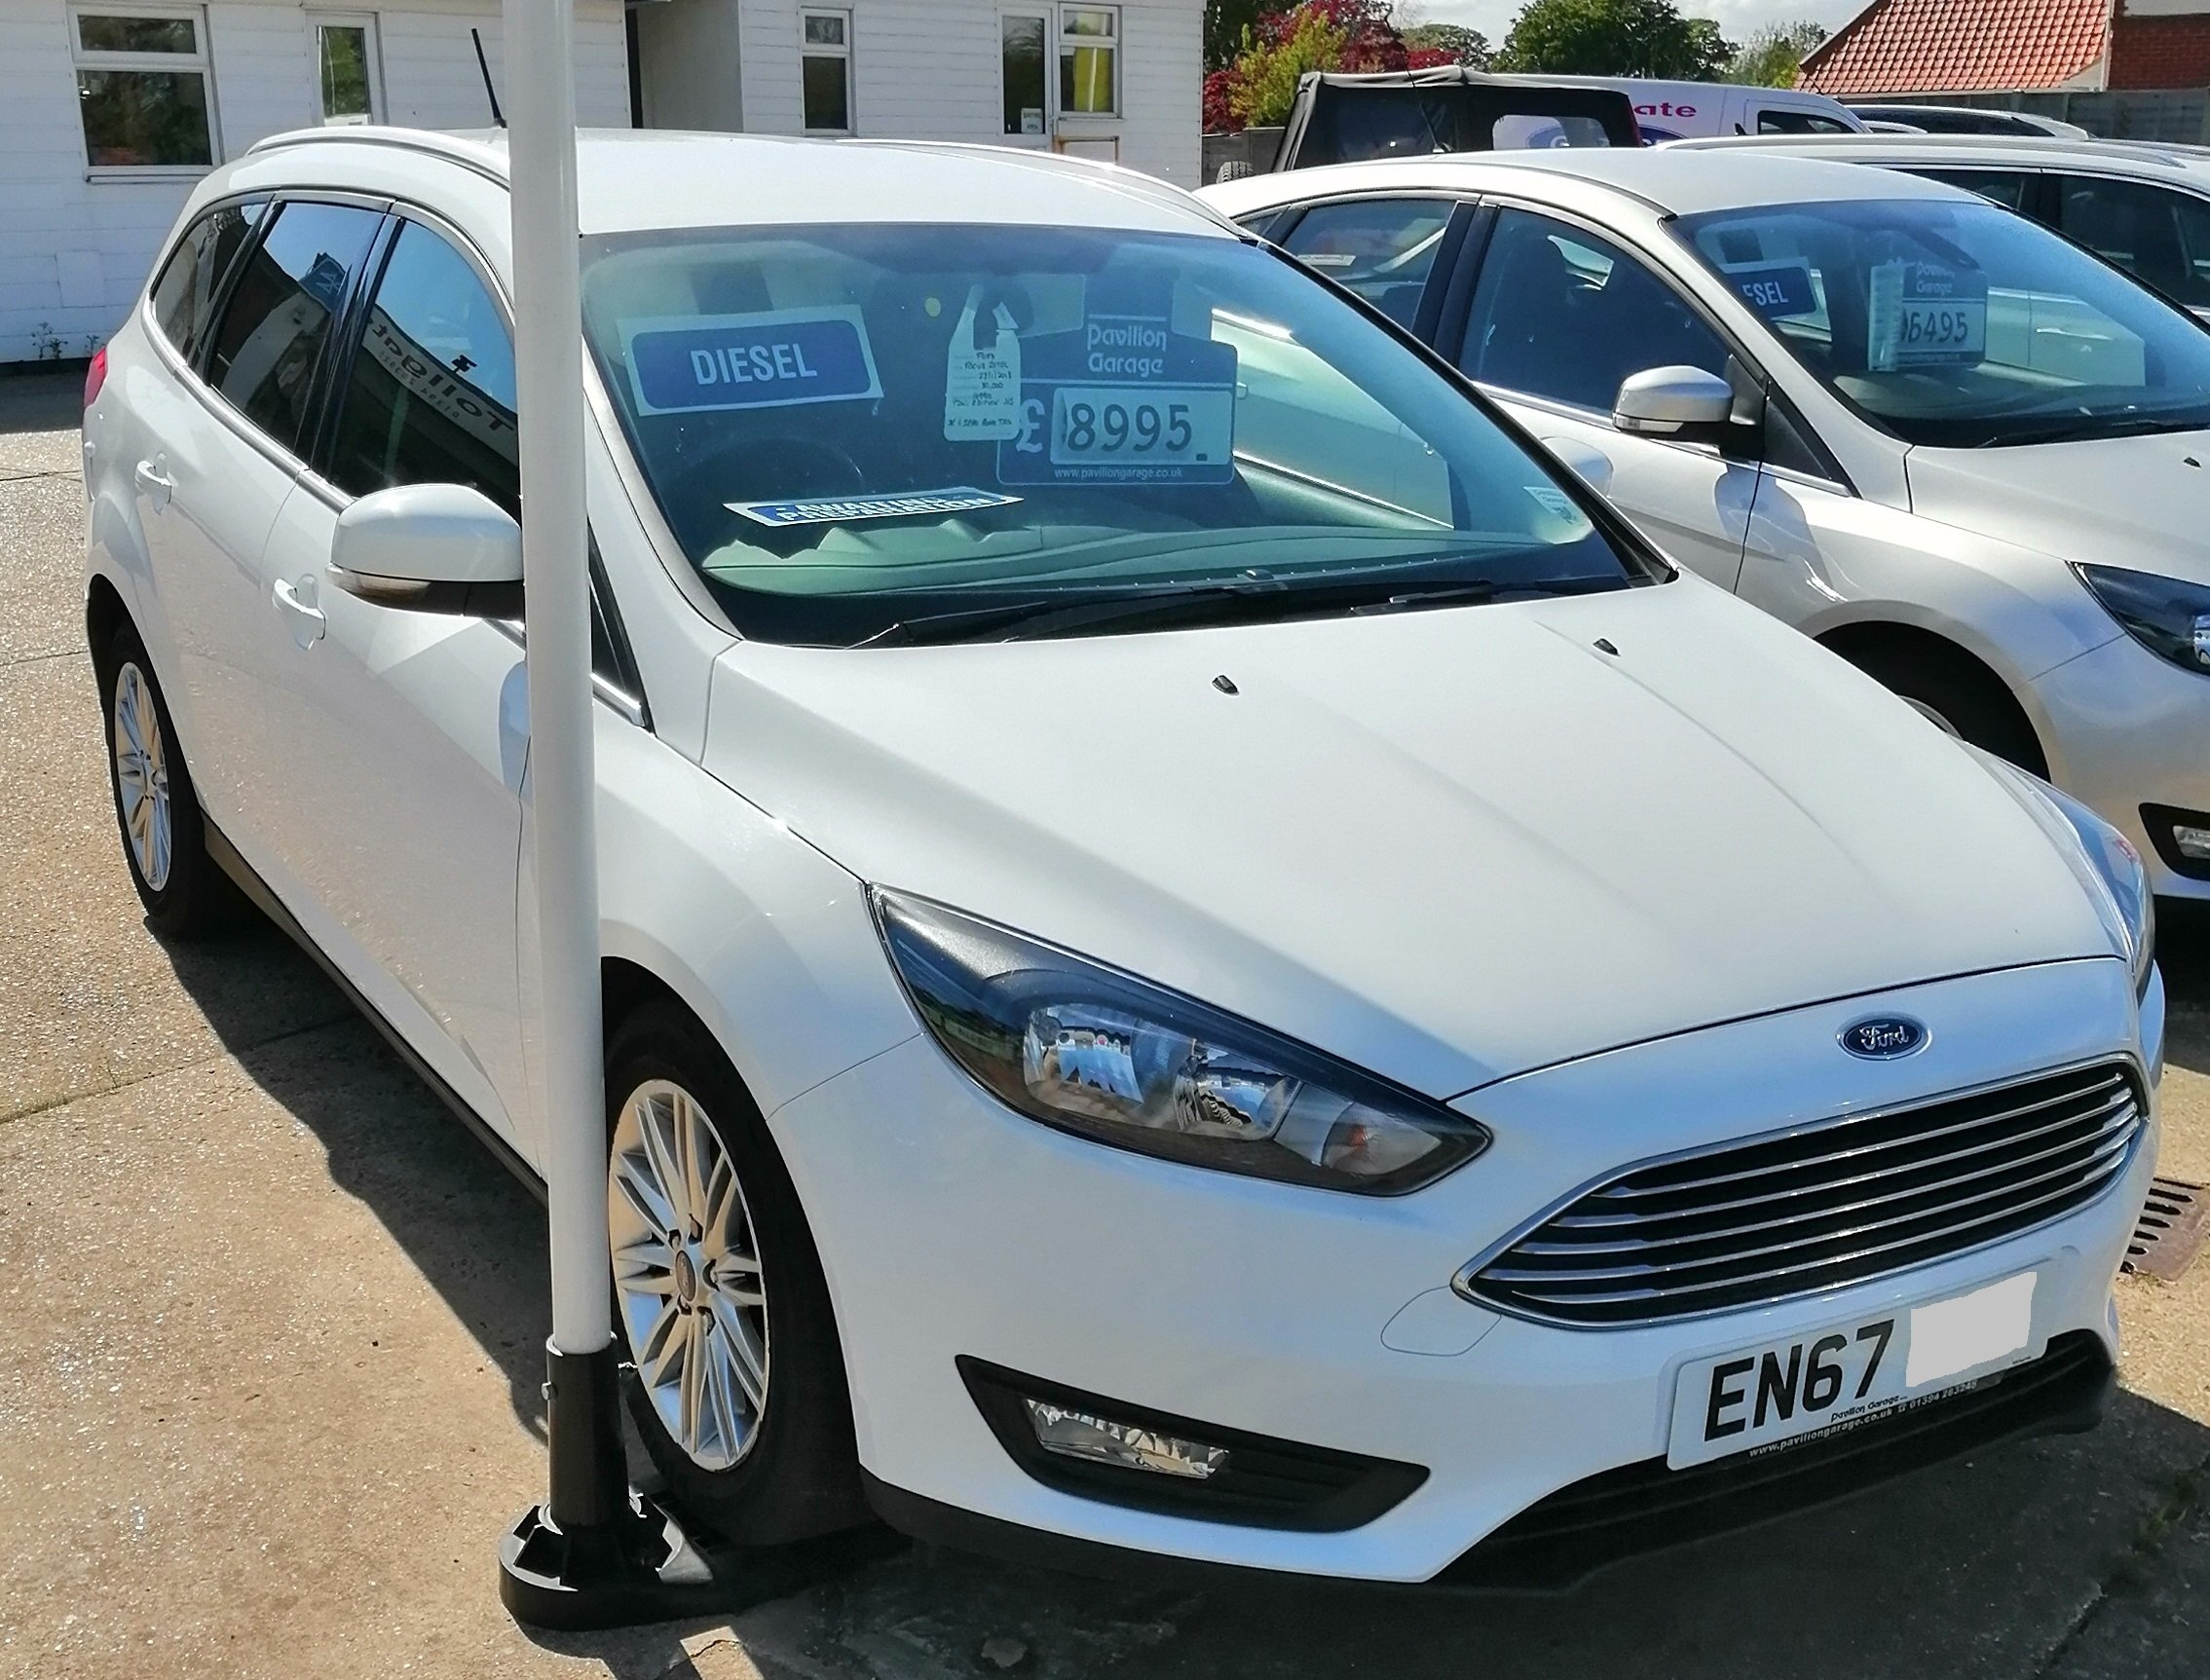 Ford Focus Zetec Edition TDCi Est 1499cc - Diesel 2018 / 67 82,100 miles Service History Spare Key £155 per year Road Tax £9695  In daily use